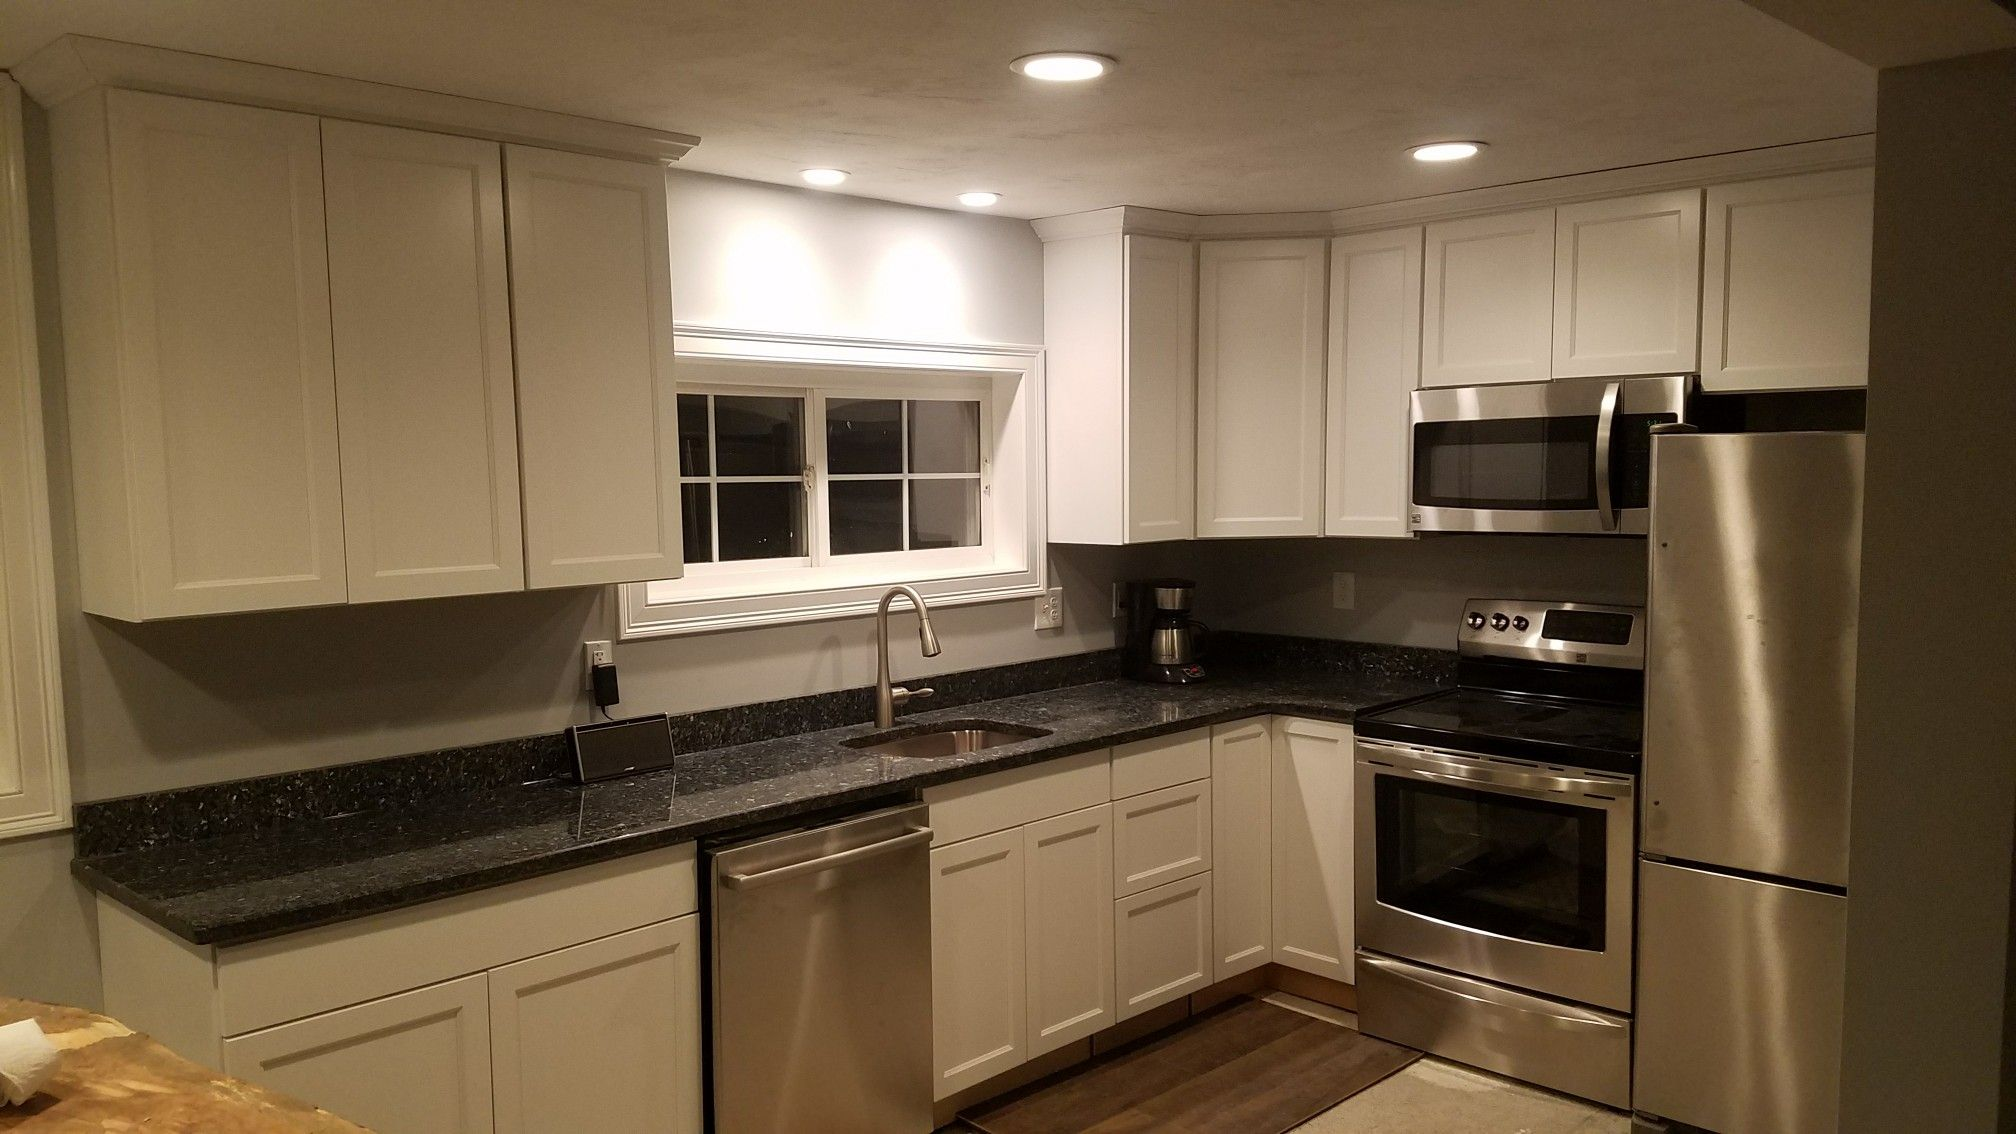 Blue Pearl Countertops, Extra white maple cabinets ... on Maple Cabinets With White Countertops  id=72275